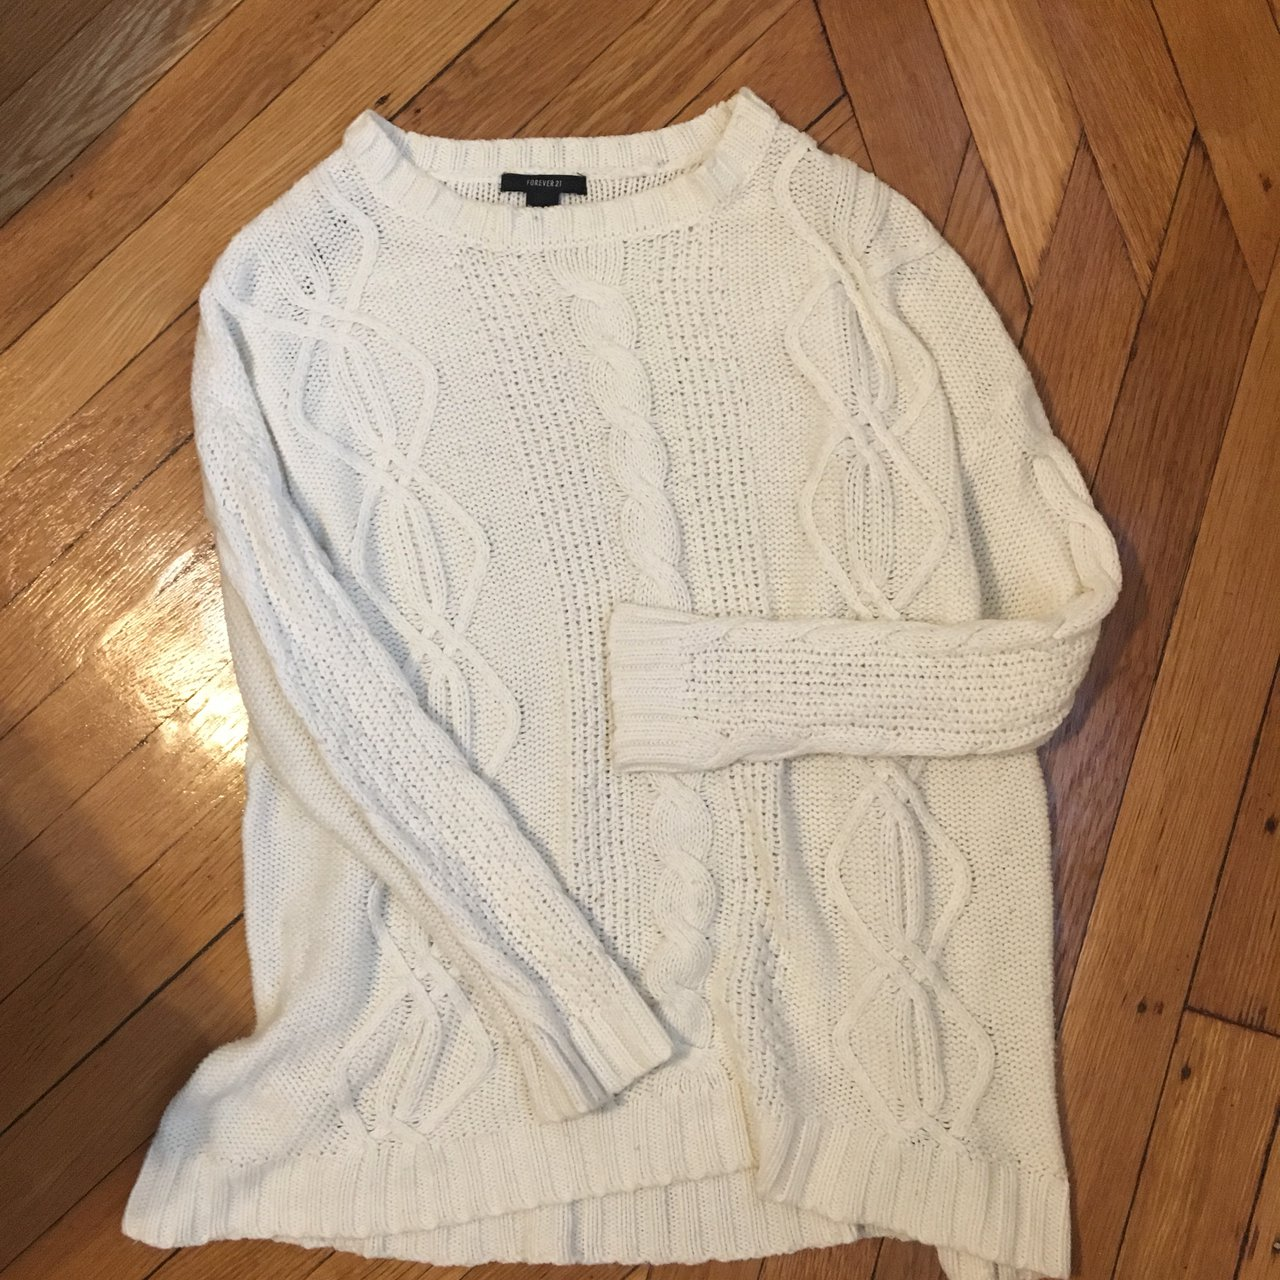 Oversized White Cable-Knit Sweater 🕊 Fits like a tunic - a - Depop 0fa06170d